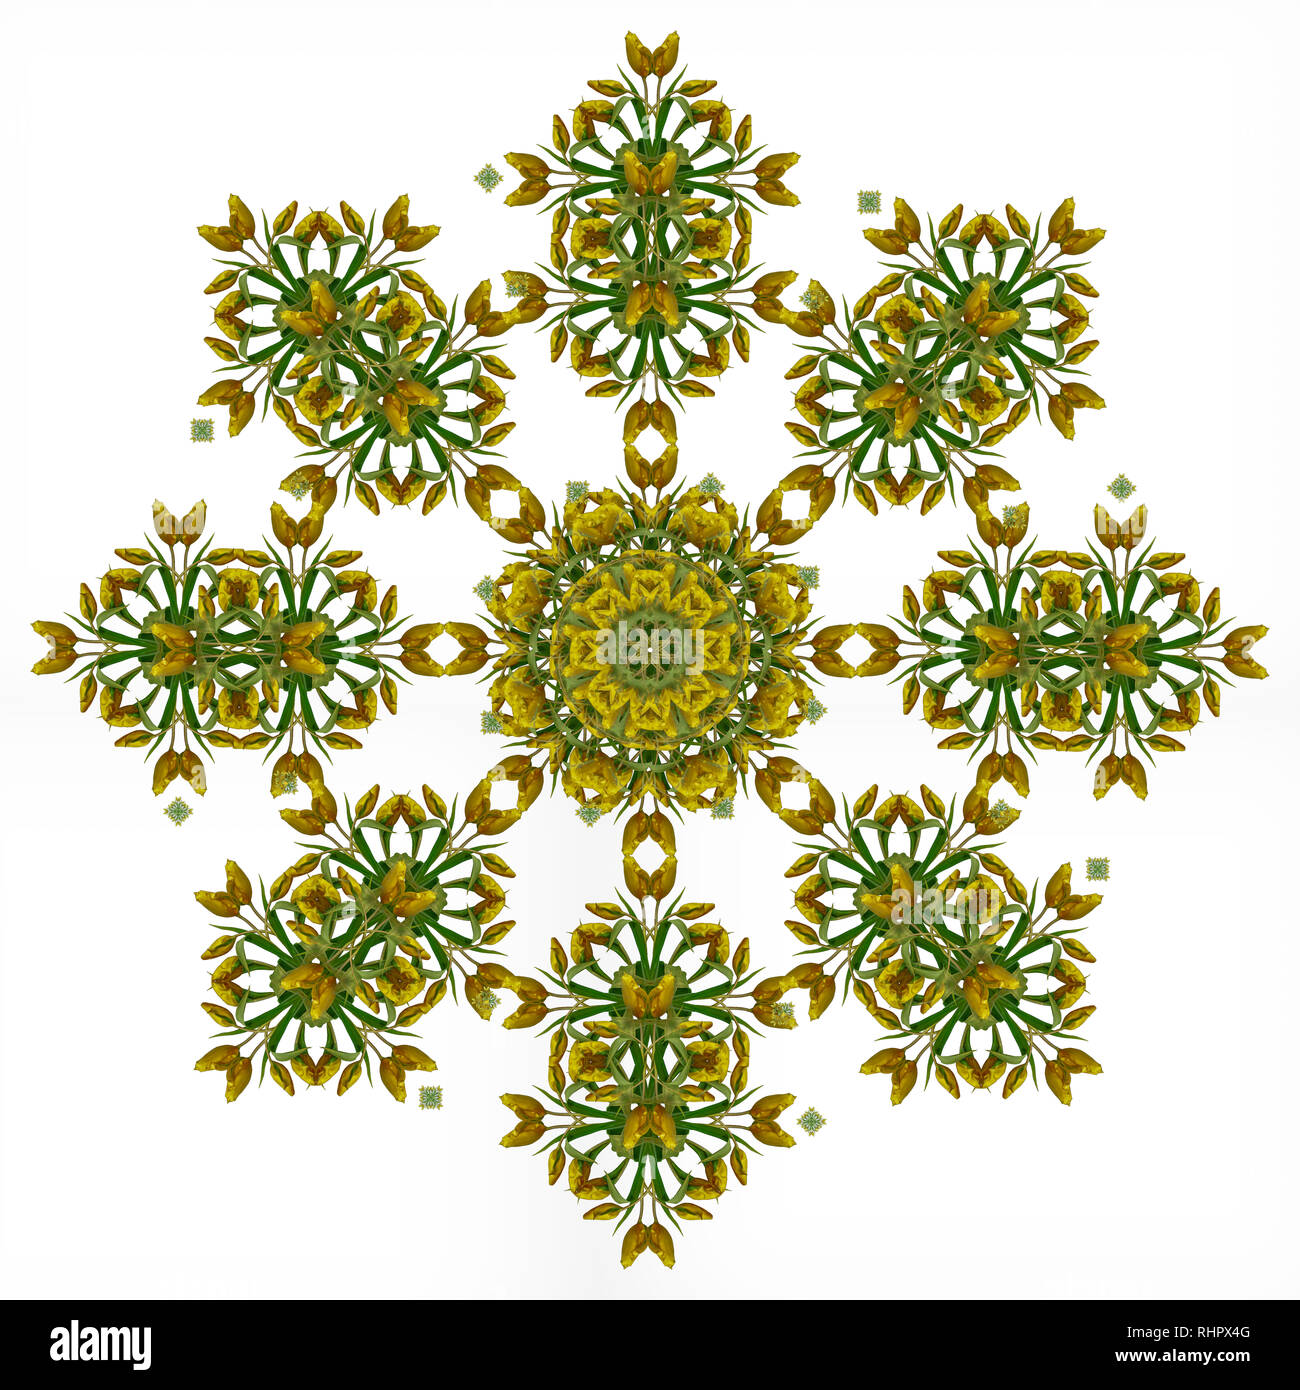 Fine art floral decorative and symmetrical fractal color pattern made from macros of yellow dark green red tulips,white background,vintage painting - Stock Image